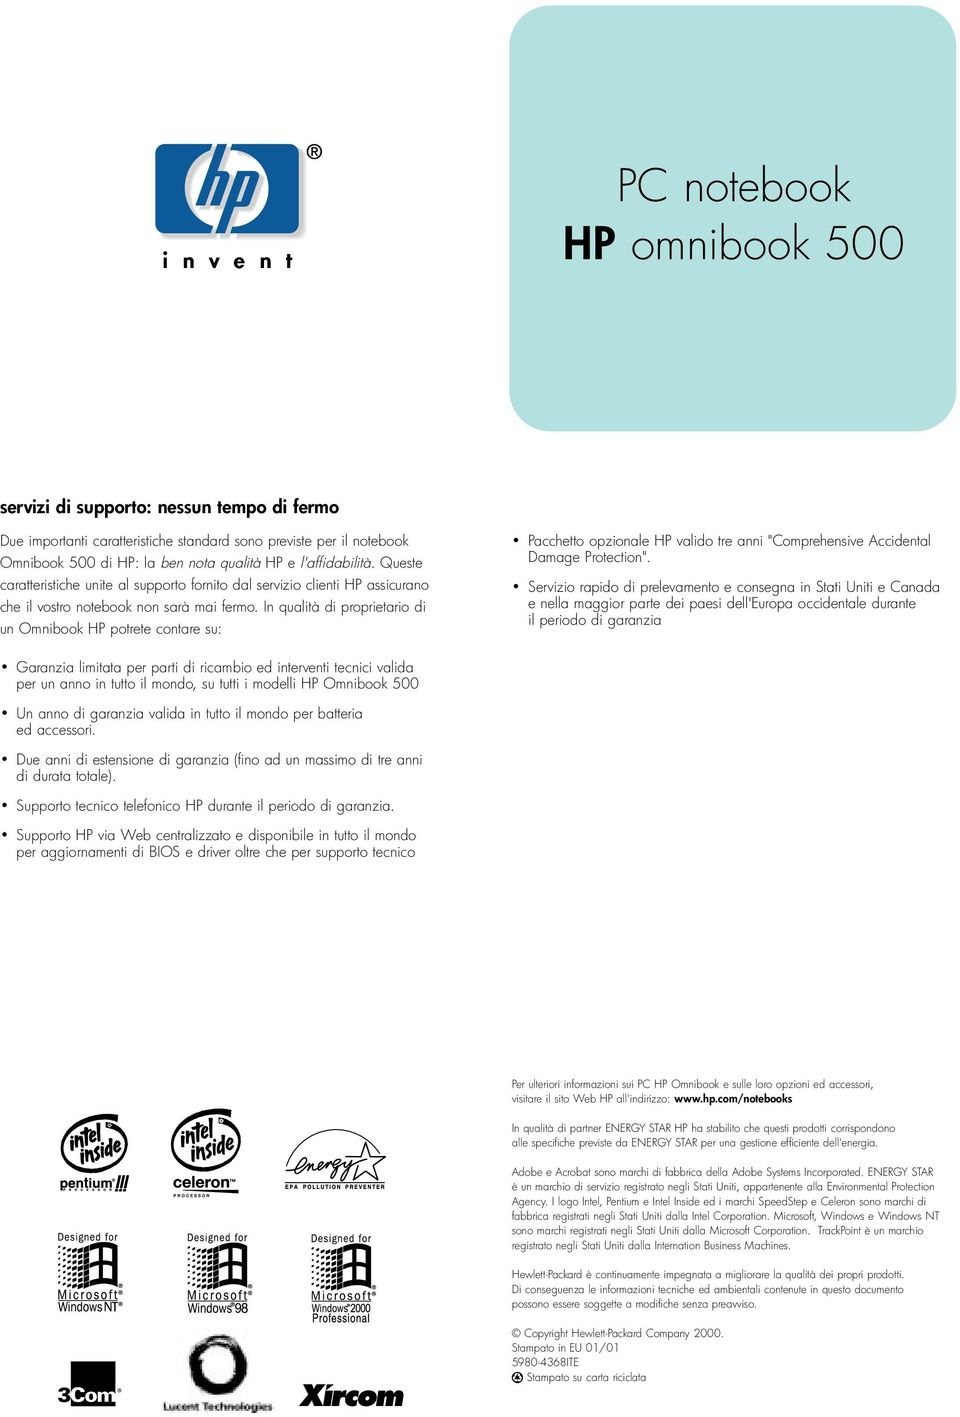 "In qualità di proprietario di un Omnibook HP potrete contare su: Pacchetto opzionale HP valido tre anni ""Comprehensive Accidental Damage Protection""."